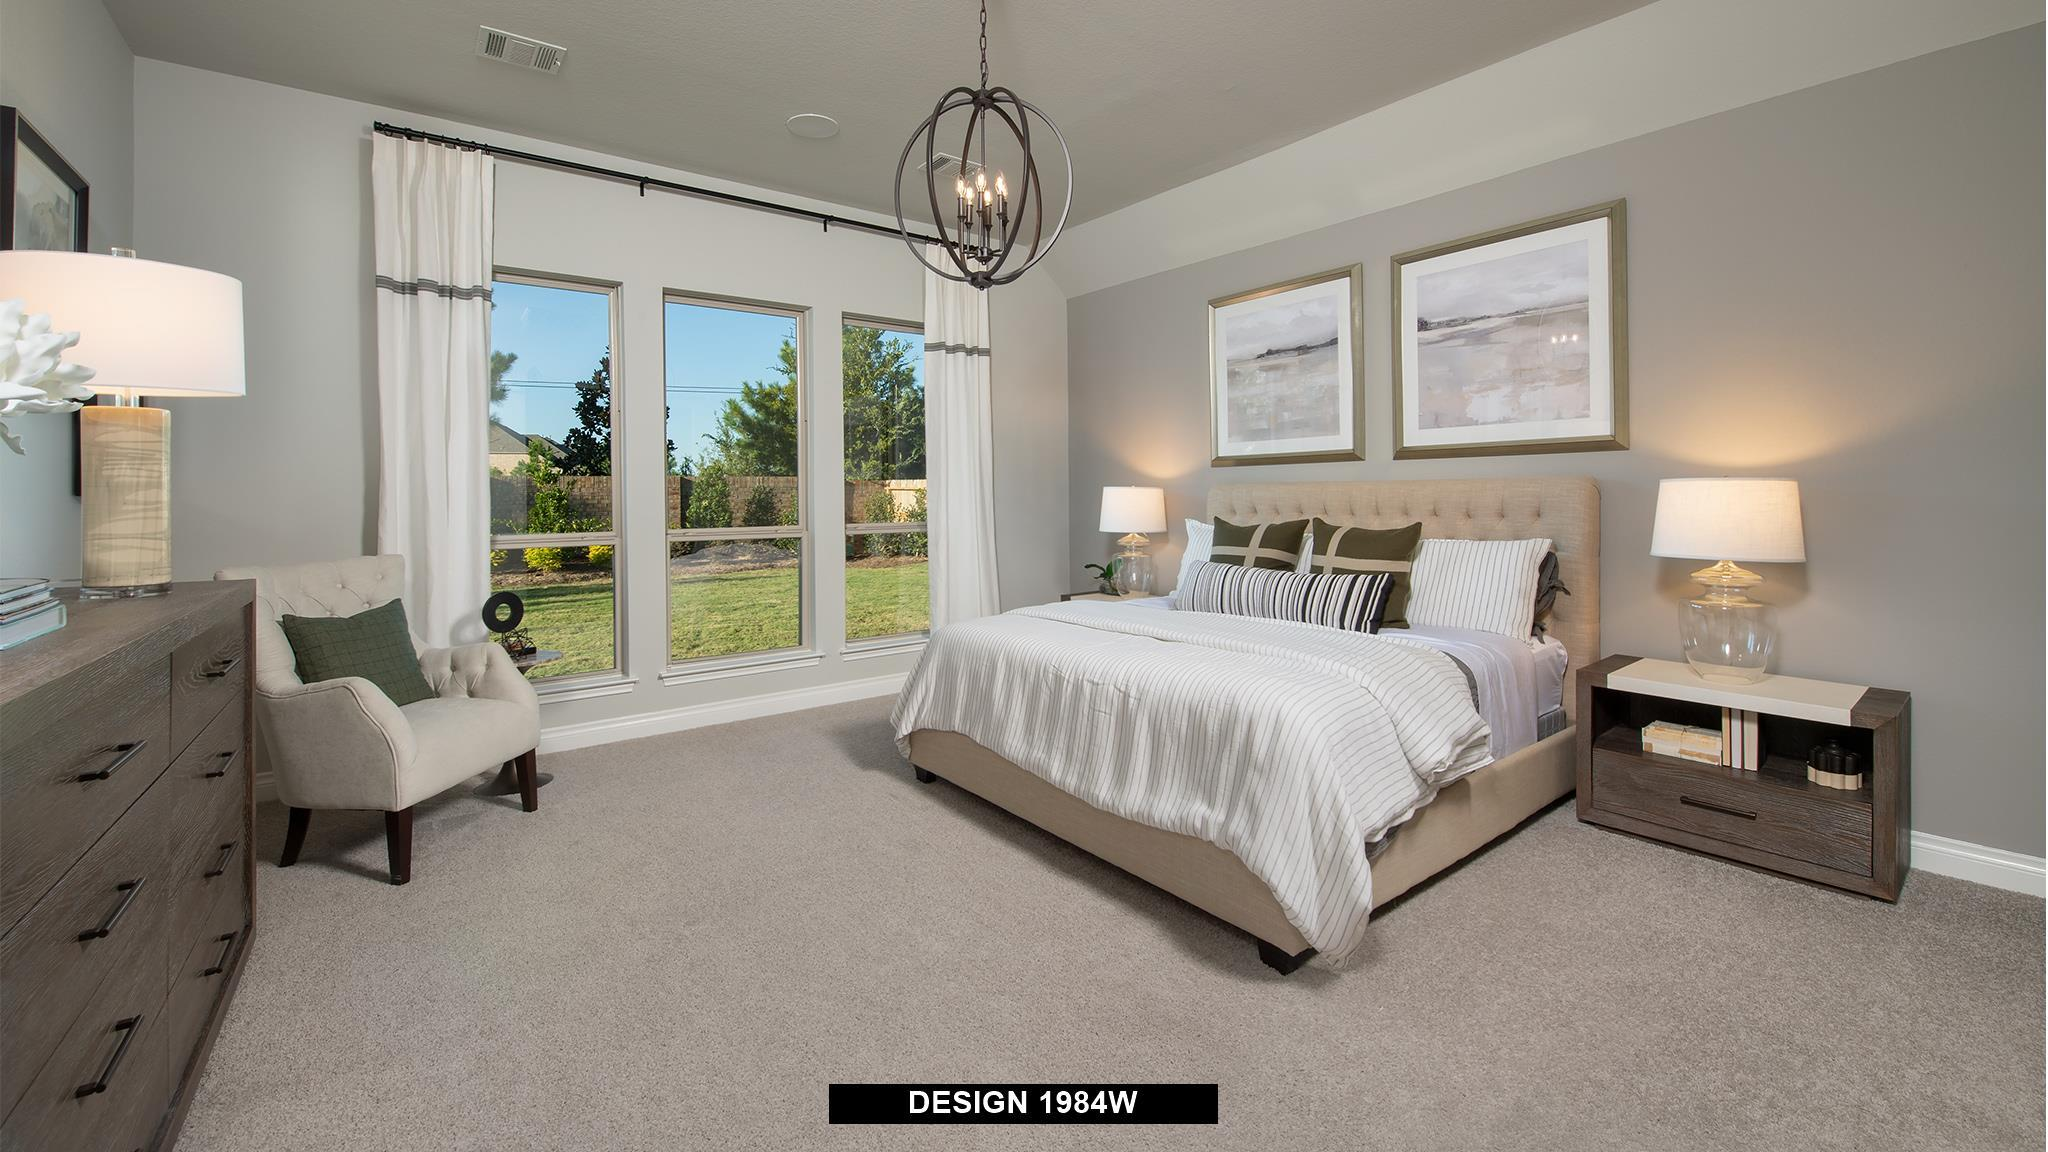 Bedroom featured in the 1984W By Perry Homes in Dallas, TX